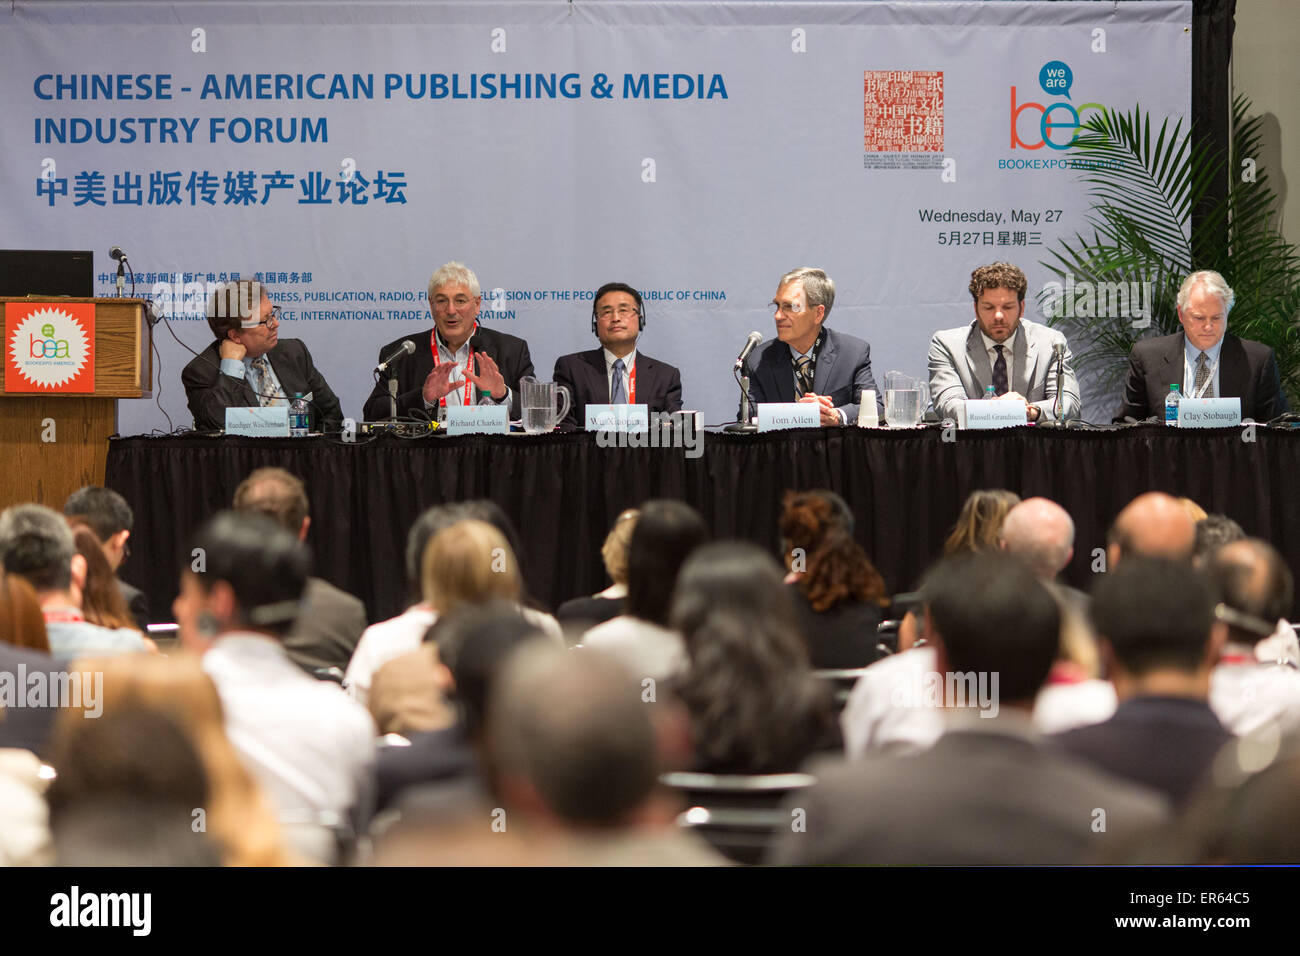 New York, USA. 27th May, 2015. Guests attend the Chinese-American Publishing & Media Industry Forum during the BookExpo America (BEA) 2015 in New York, the United States, May 27, 2015. © Li Muzi/Xinhua/Alamy Live News Stock Photo